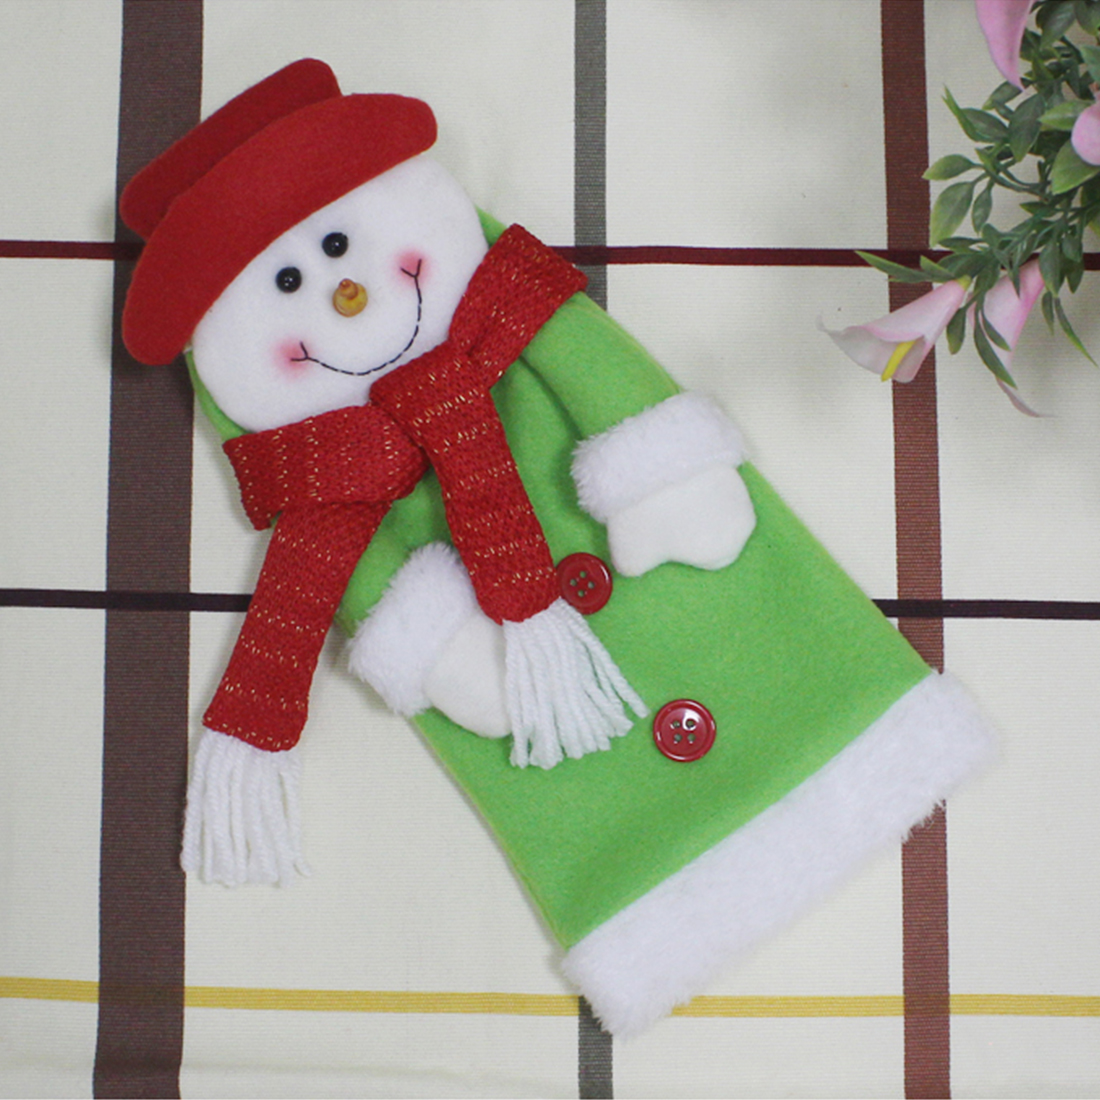 New Christmas Bottle Sets Santa Claus Snowman Wine Bottle Cover Holders Wedding Birthday Party Decoration Supplies